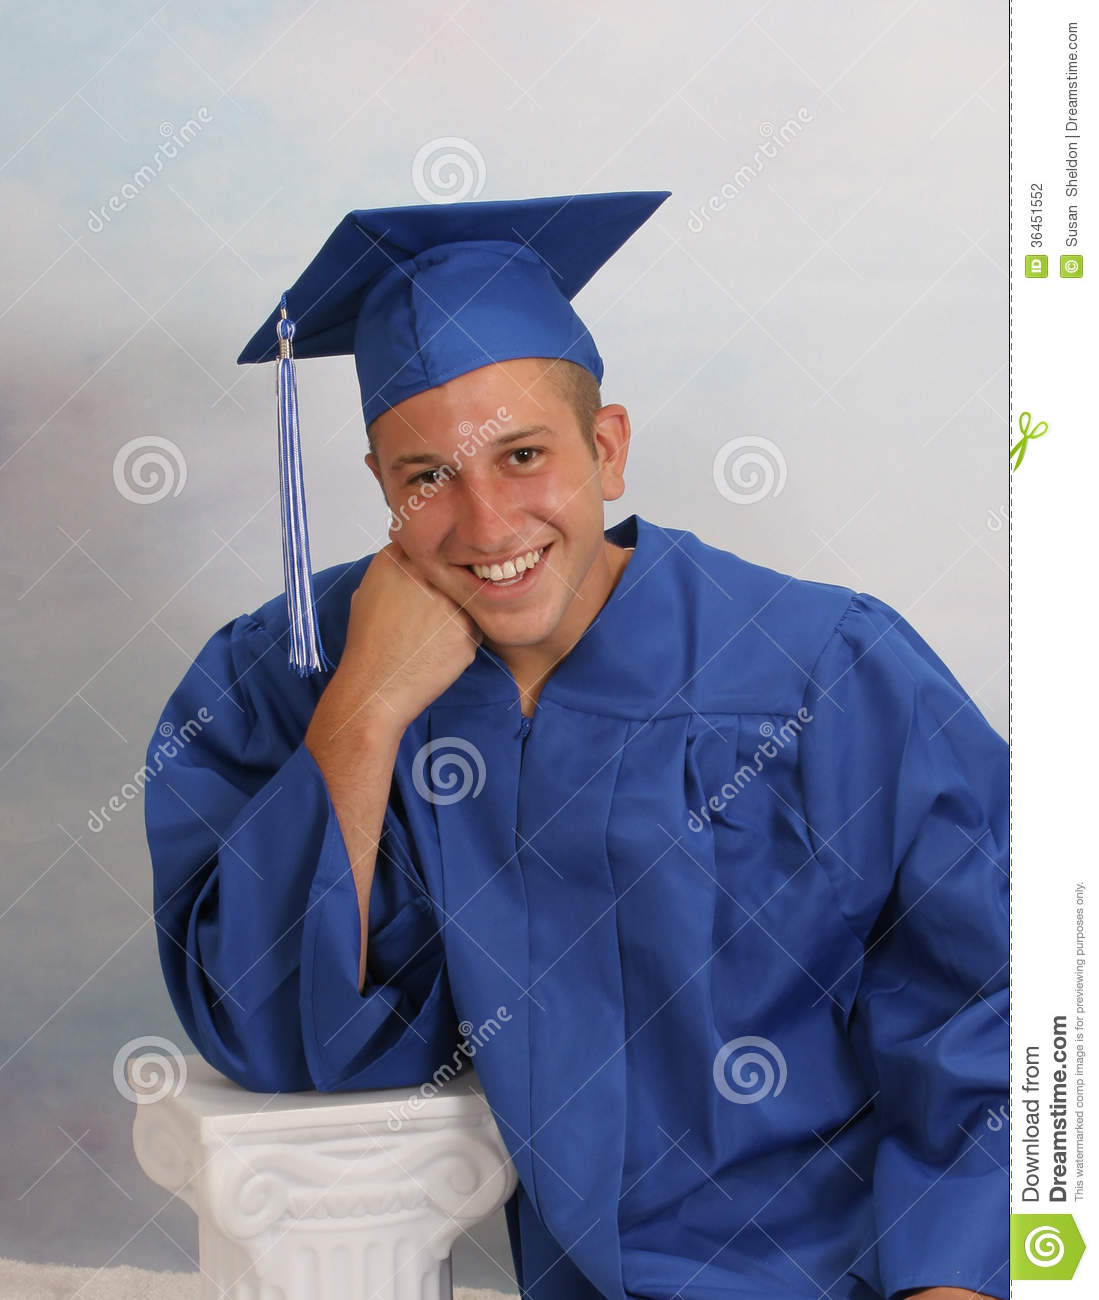 Male Teen in cap and gown stock photo. Image of education - 36451552